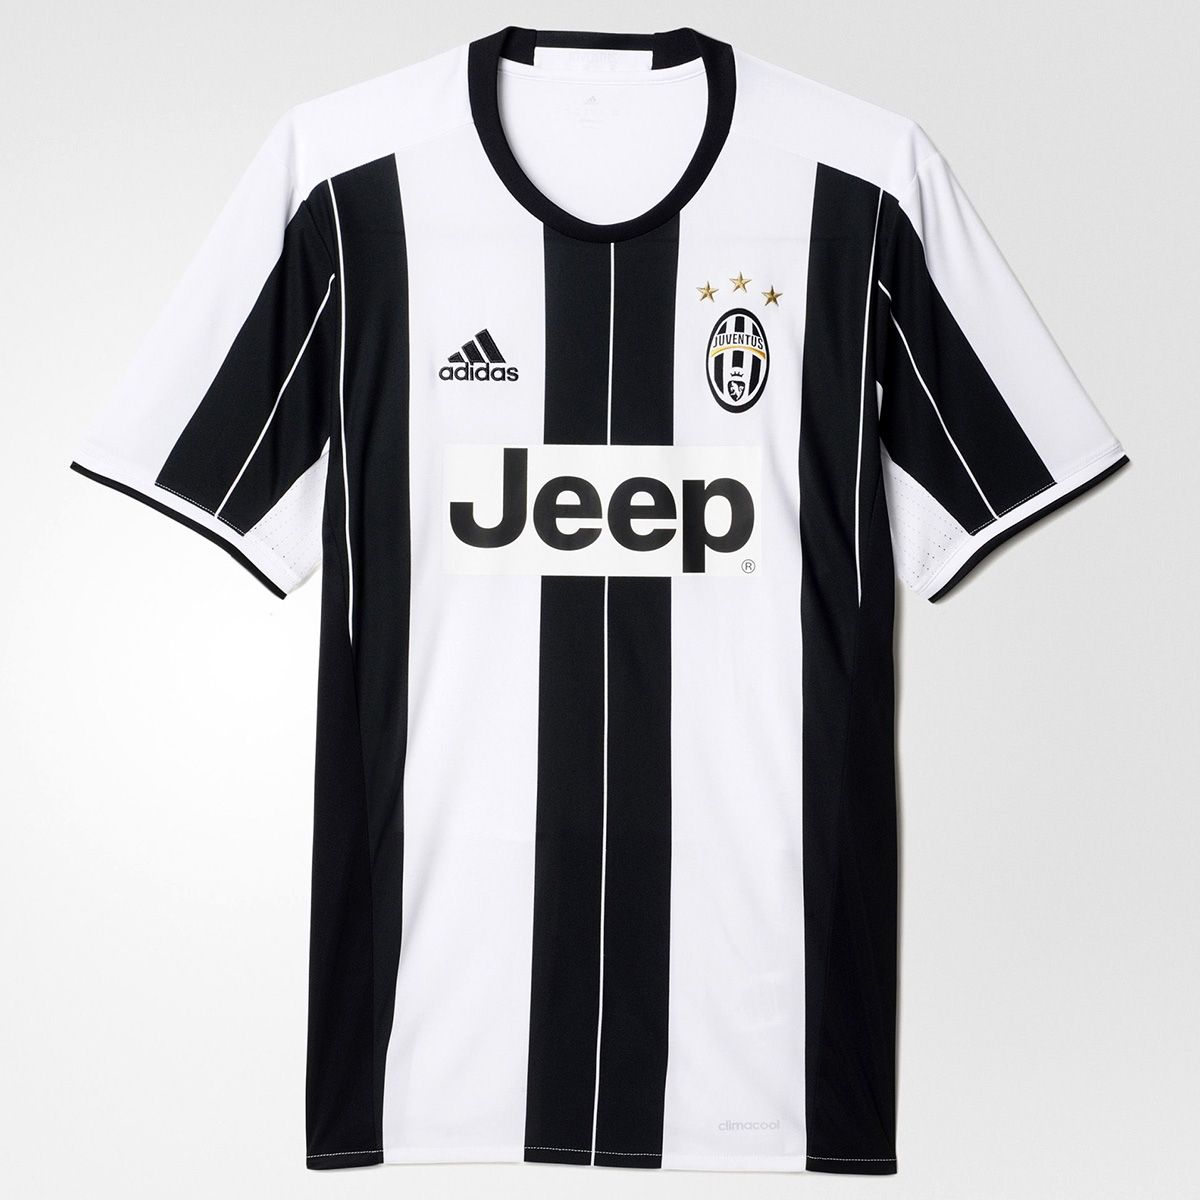 competitive price a4f8d 9a1a2 Type Shirts adidas Juventus FC Home Replica Jersey